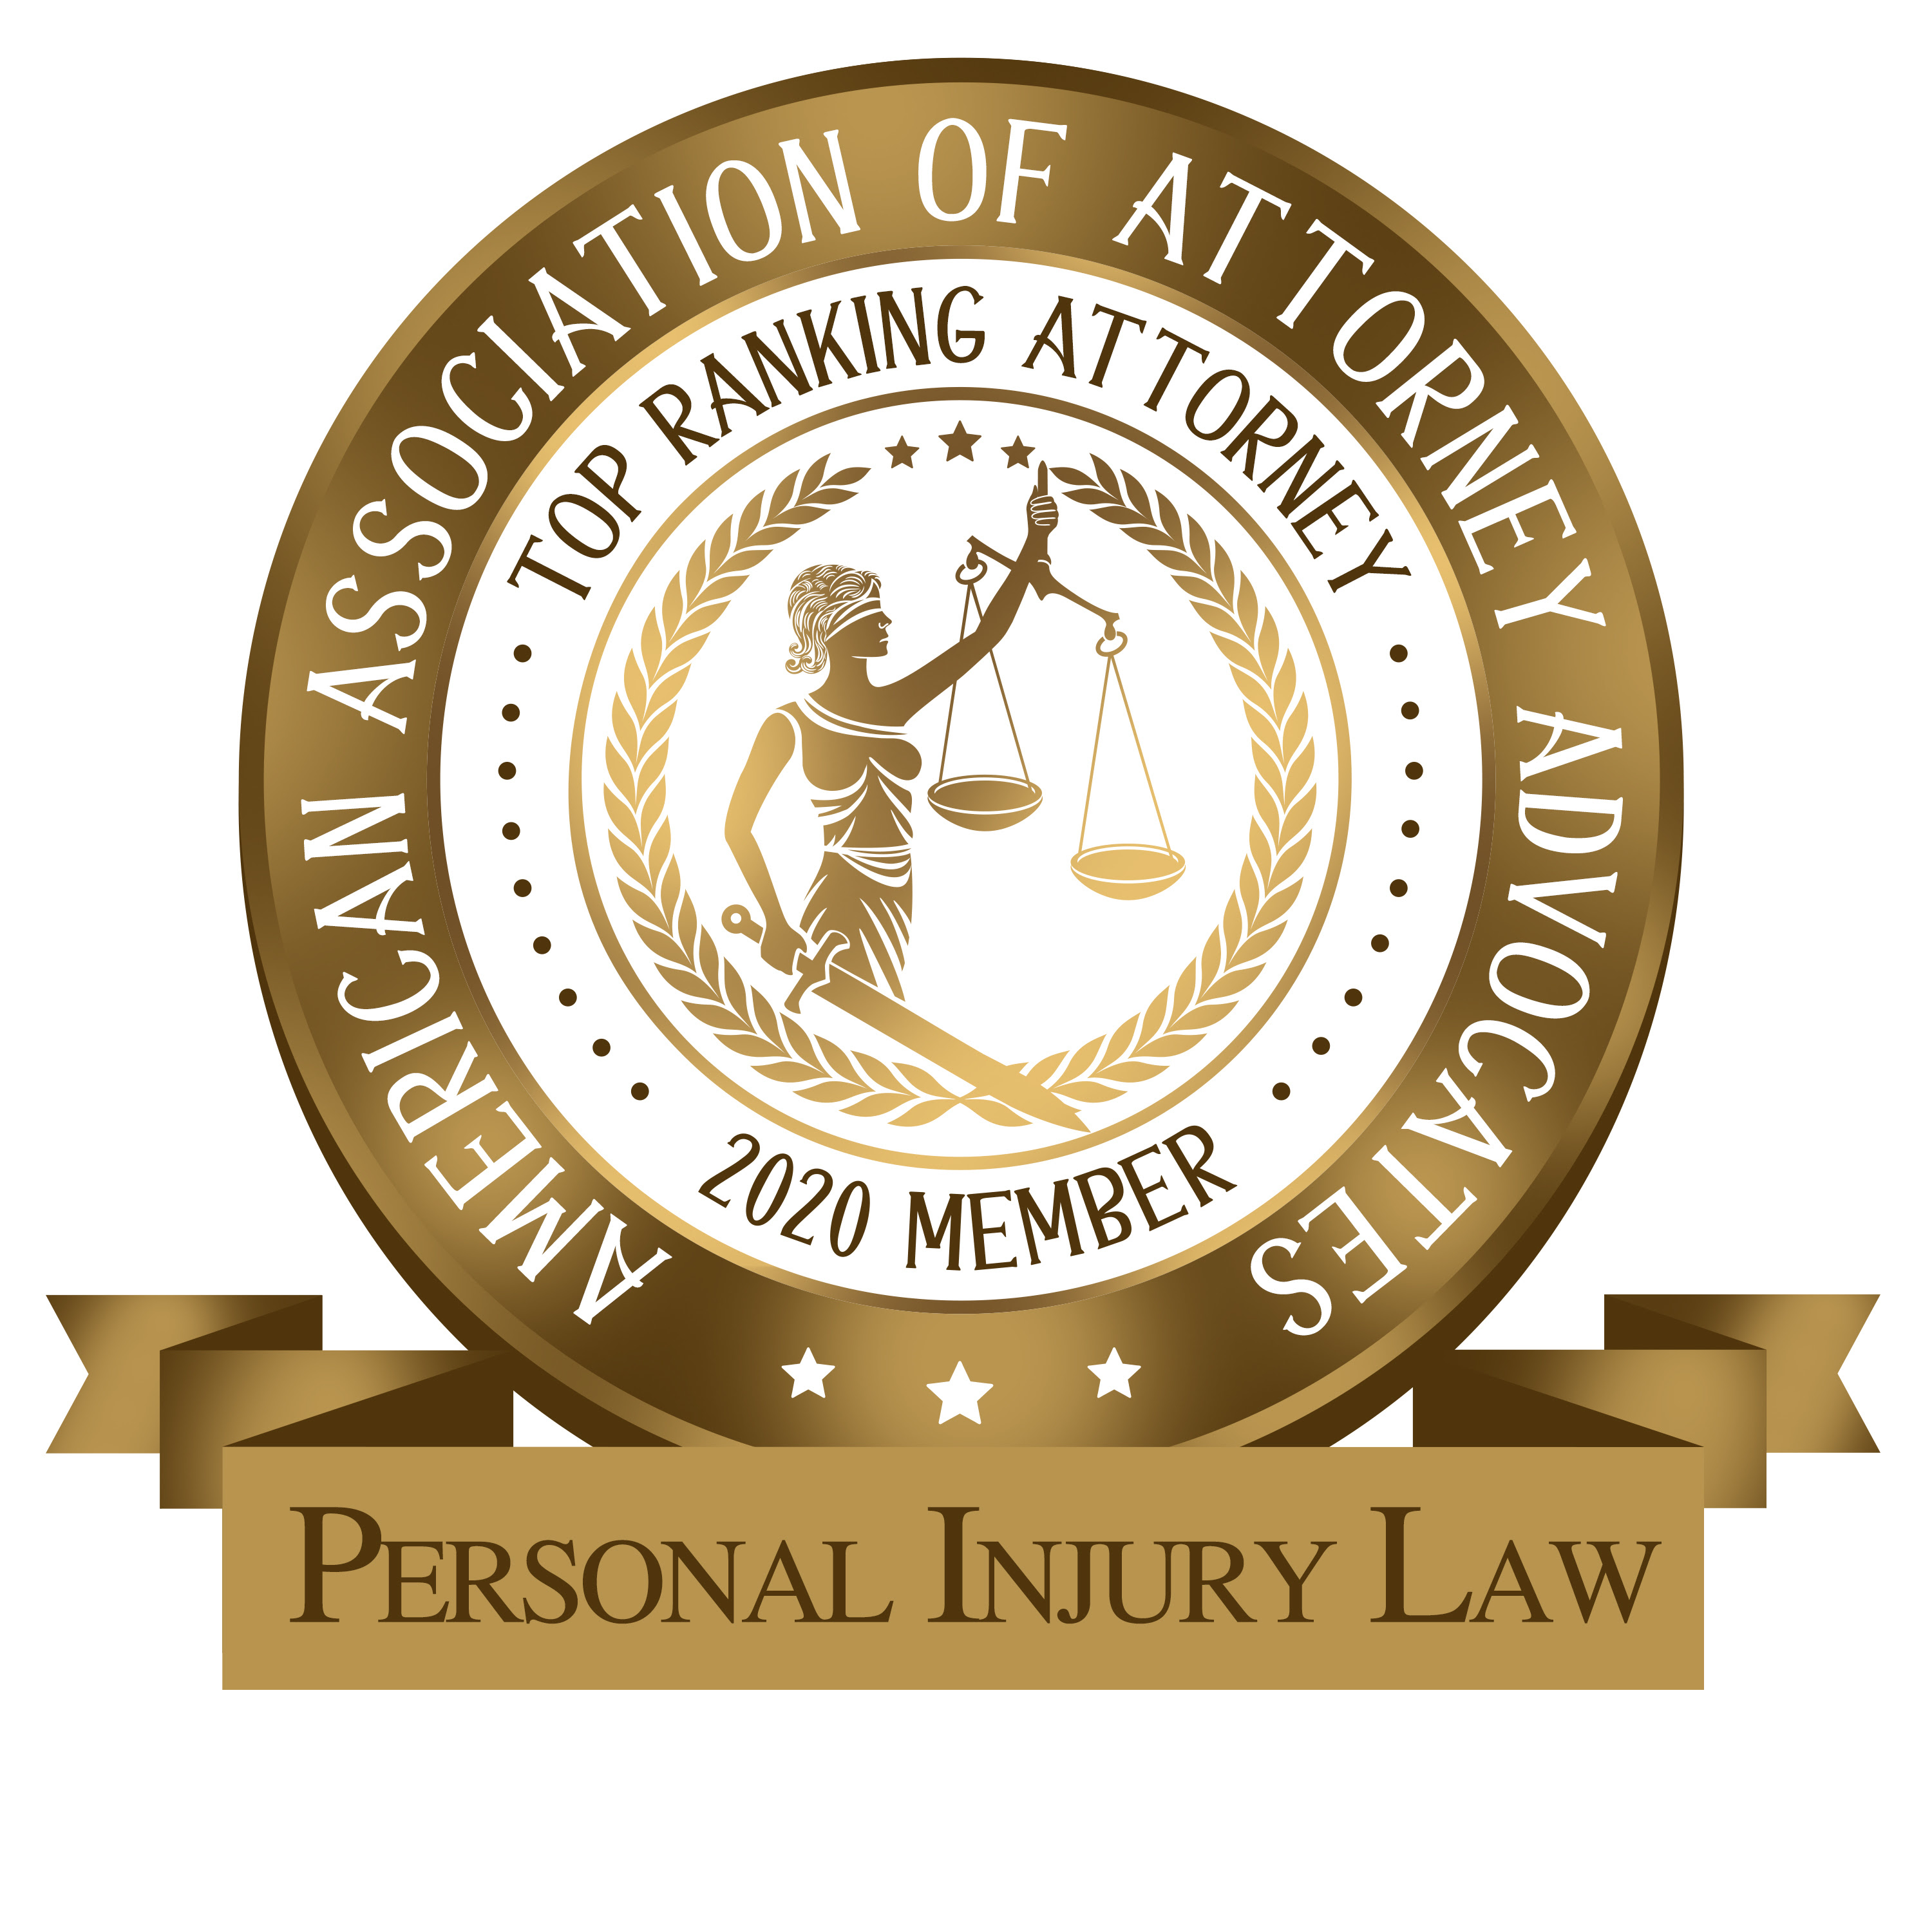 2020 Top Ranking Attorney for Personal Injury